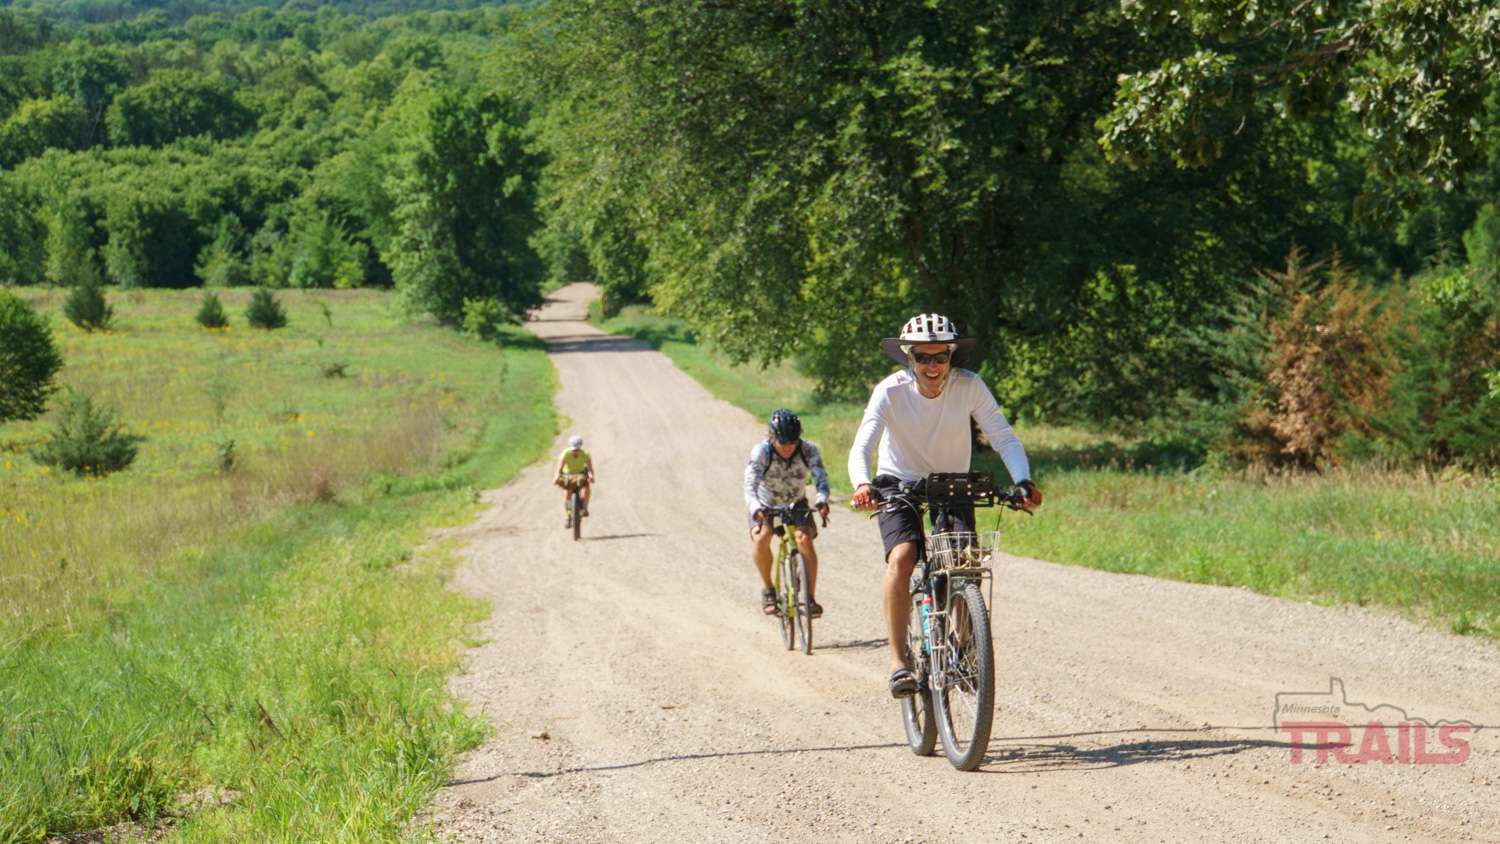 A man rides his bike at the inaugural Bluenose Gopher 50 Gravel Race